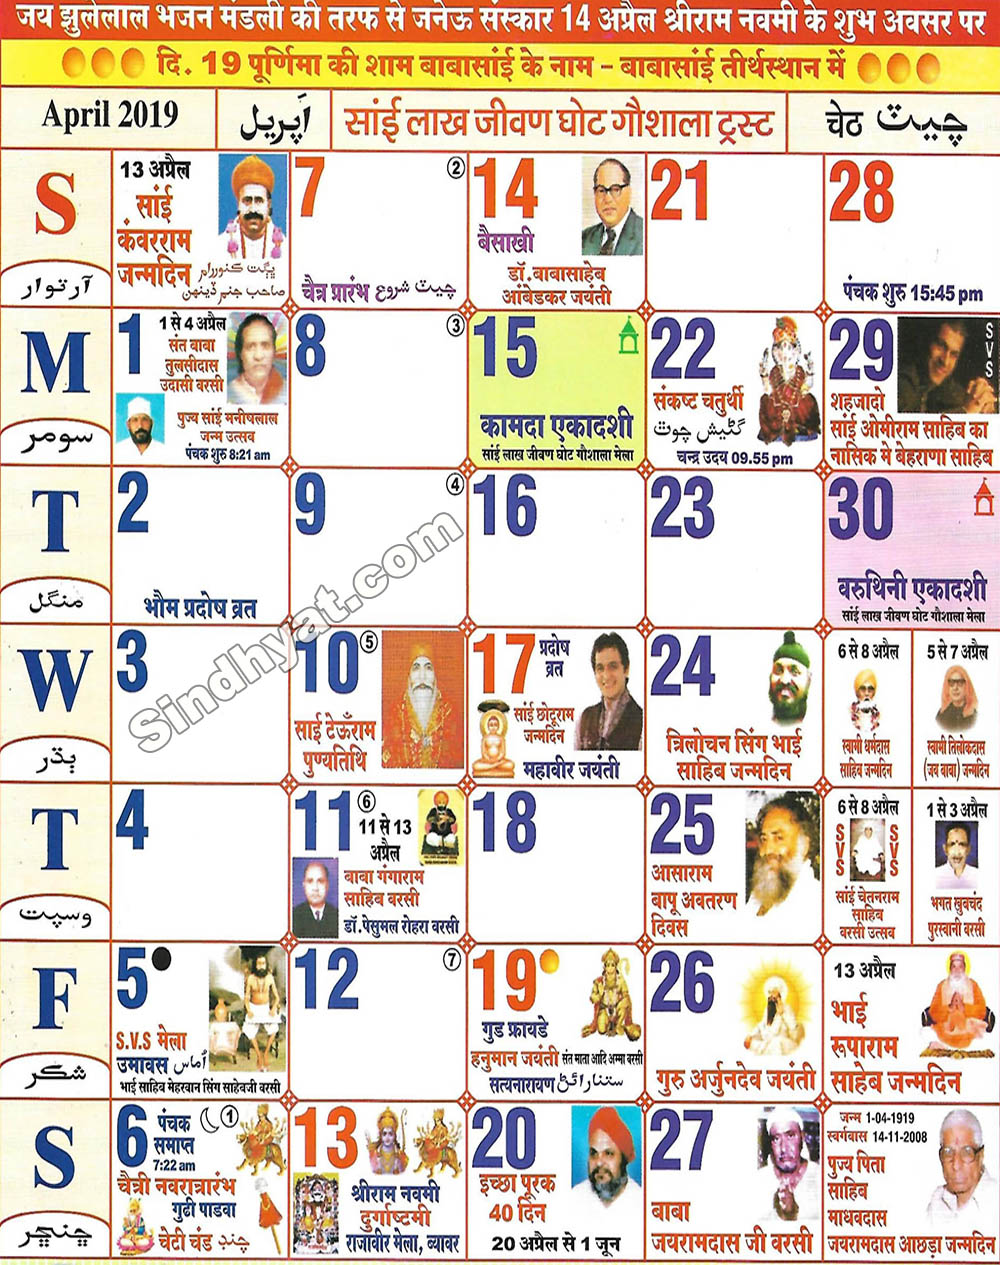 Sindhi Calendar for the month of April, 2019